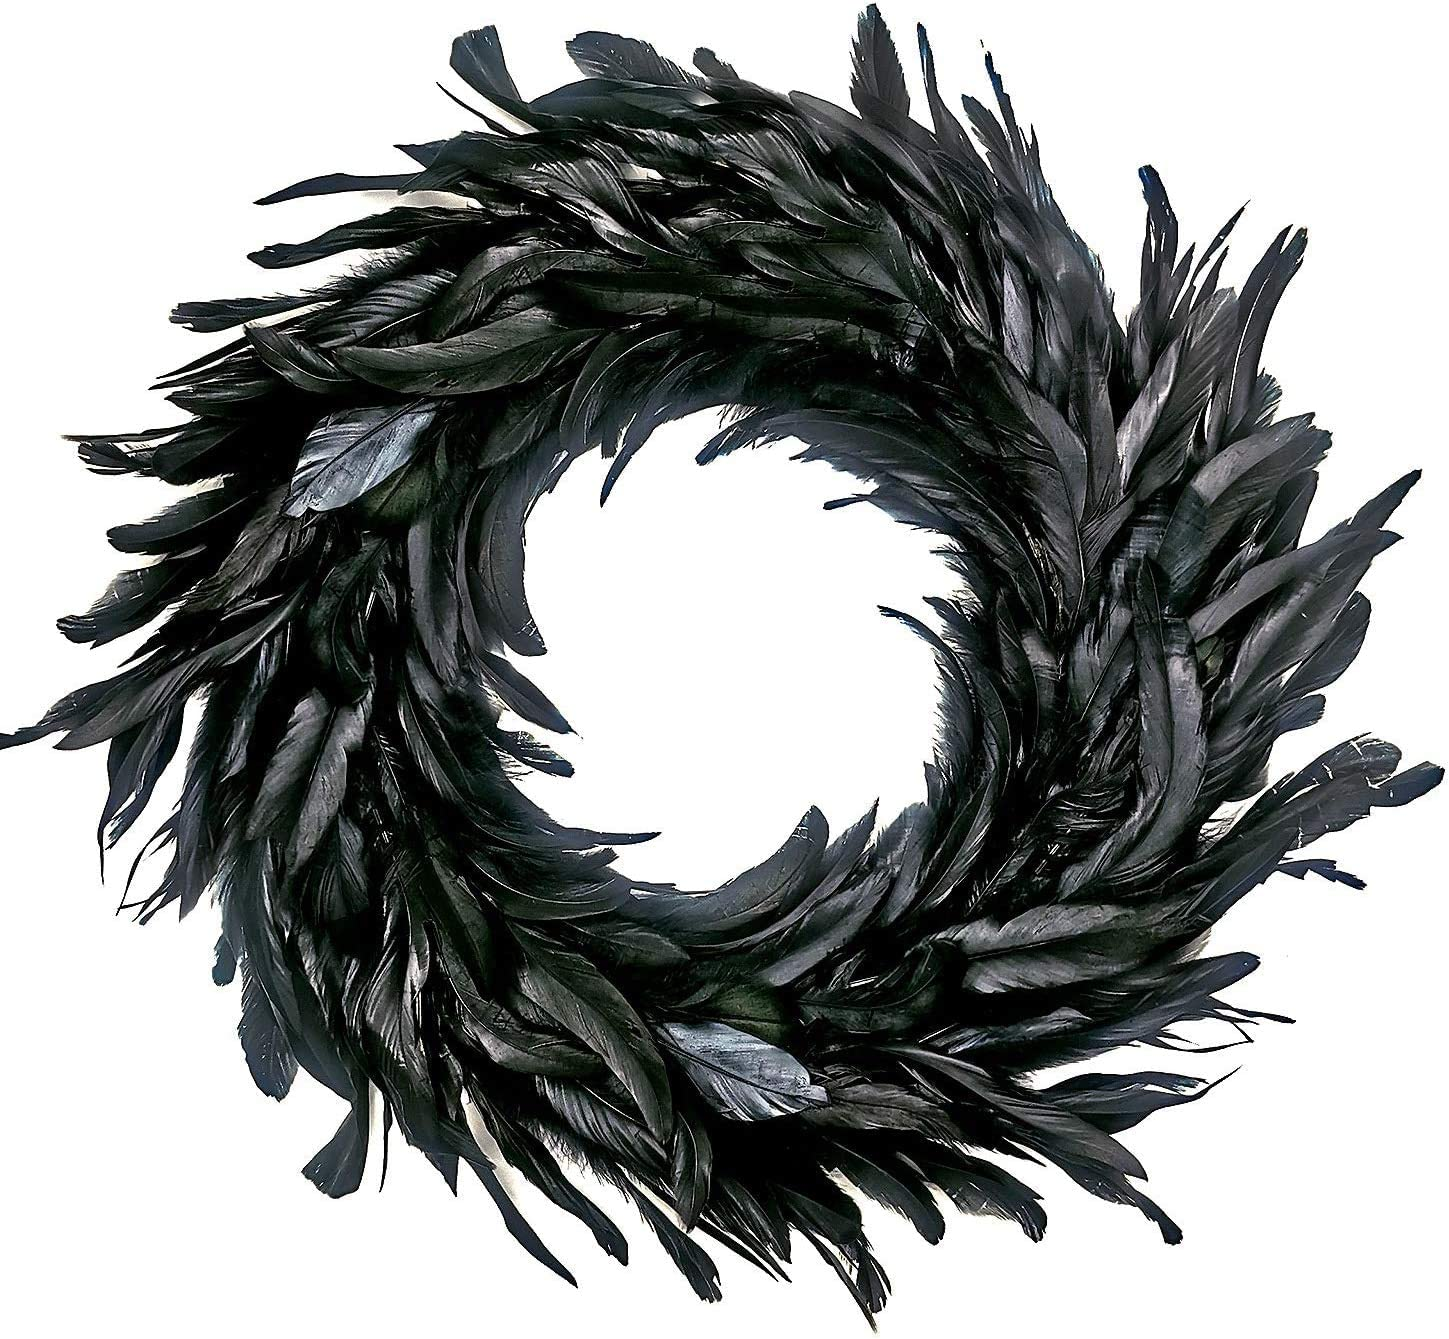 MOVINPE Halloween Wreath 14.8'' Black Natural Cocktail Feather Wreath, Halloween Photo Props, Front Door Decor Witch Spooky Scene Party Halloween Decorations